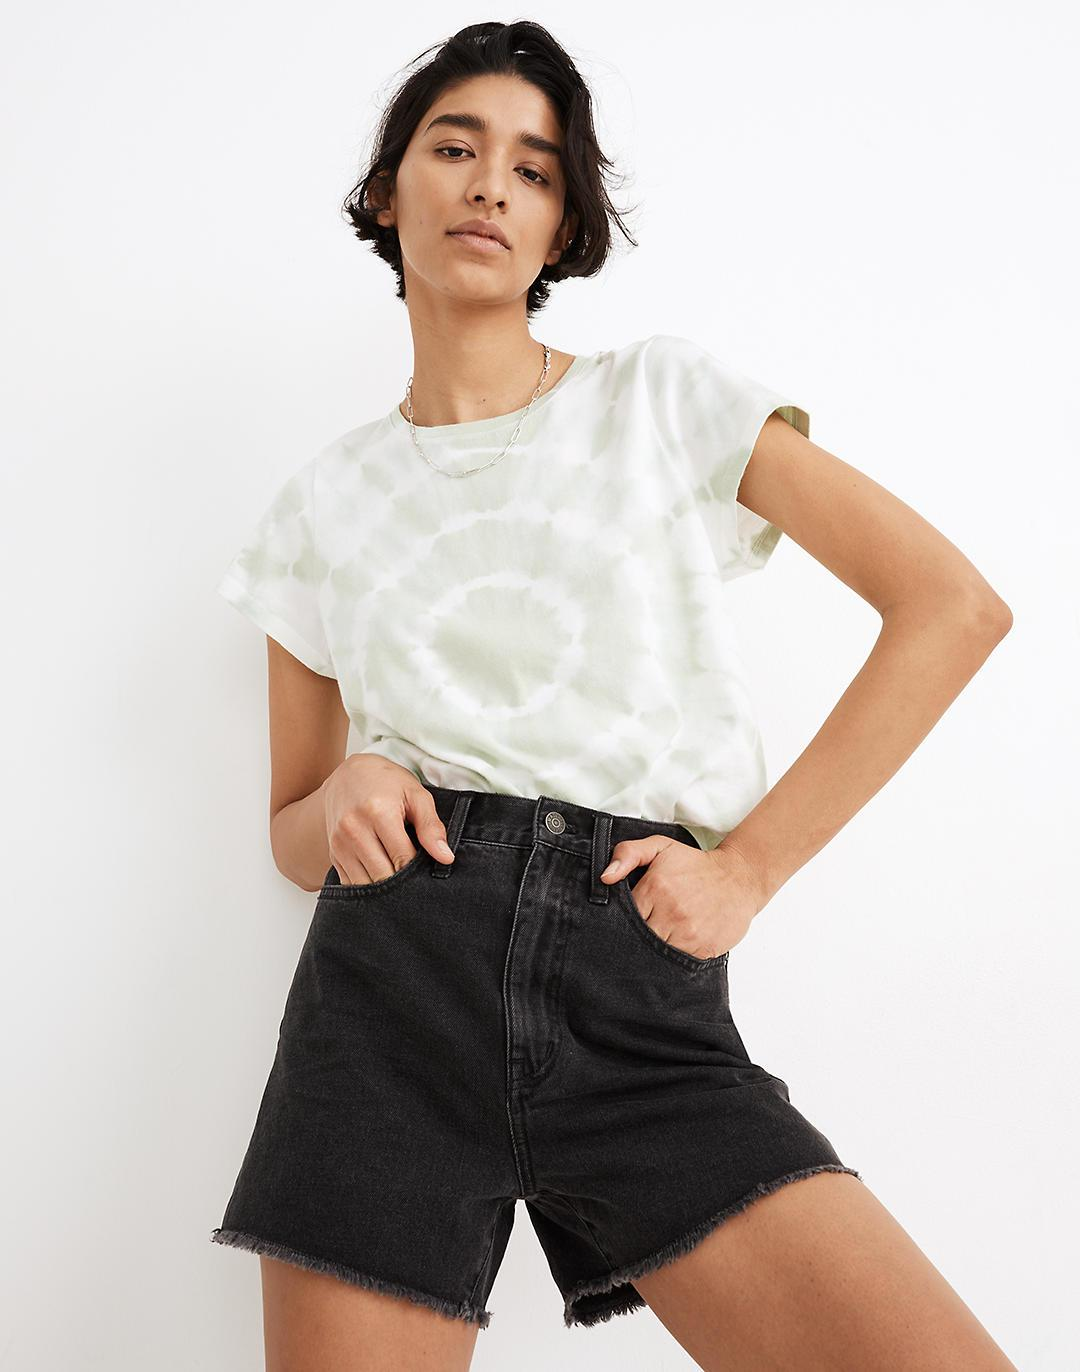 The Momjean Short in Ainslie Wash